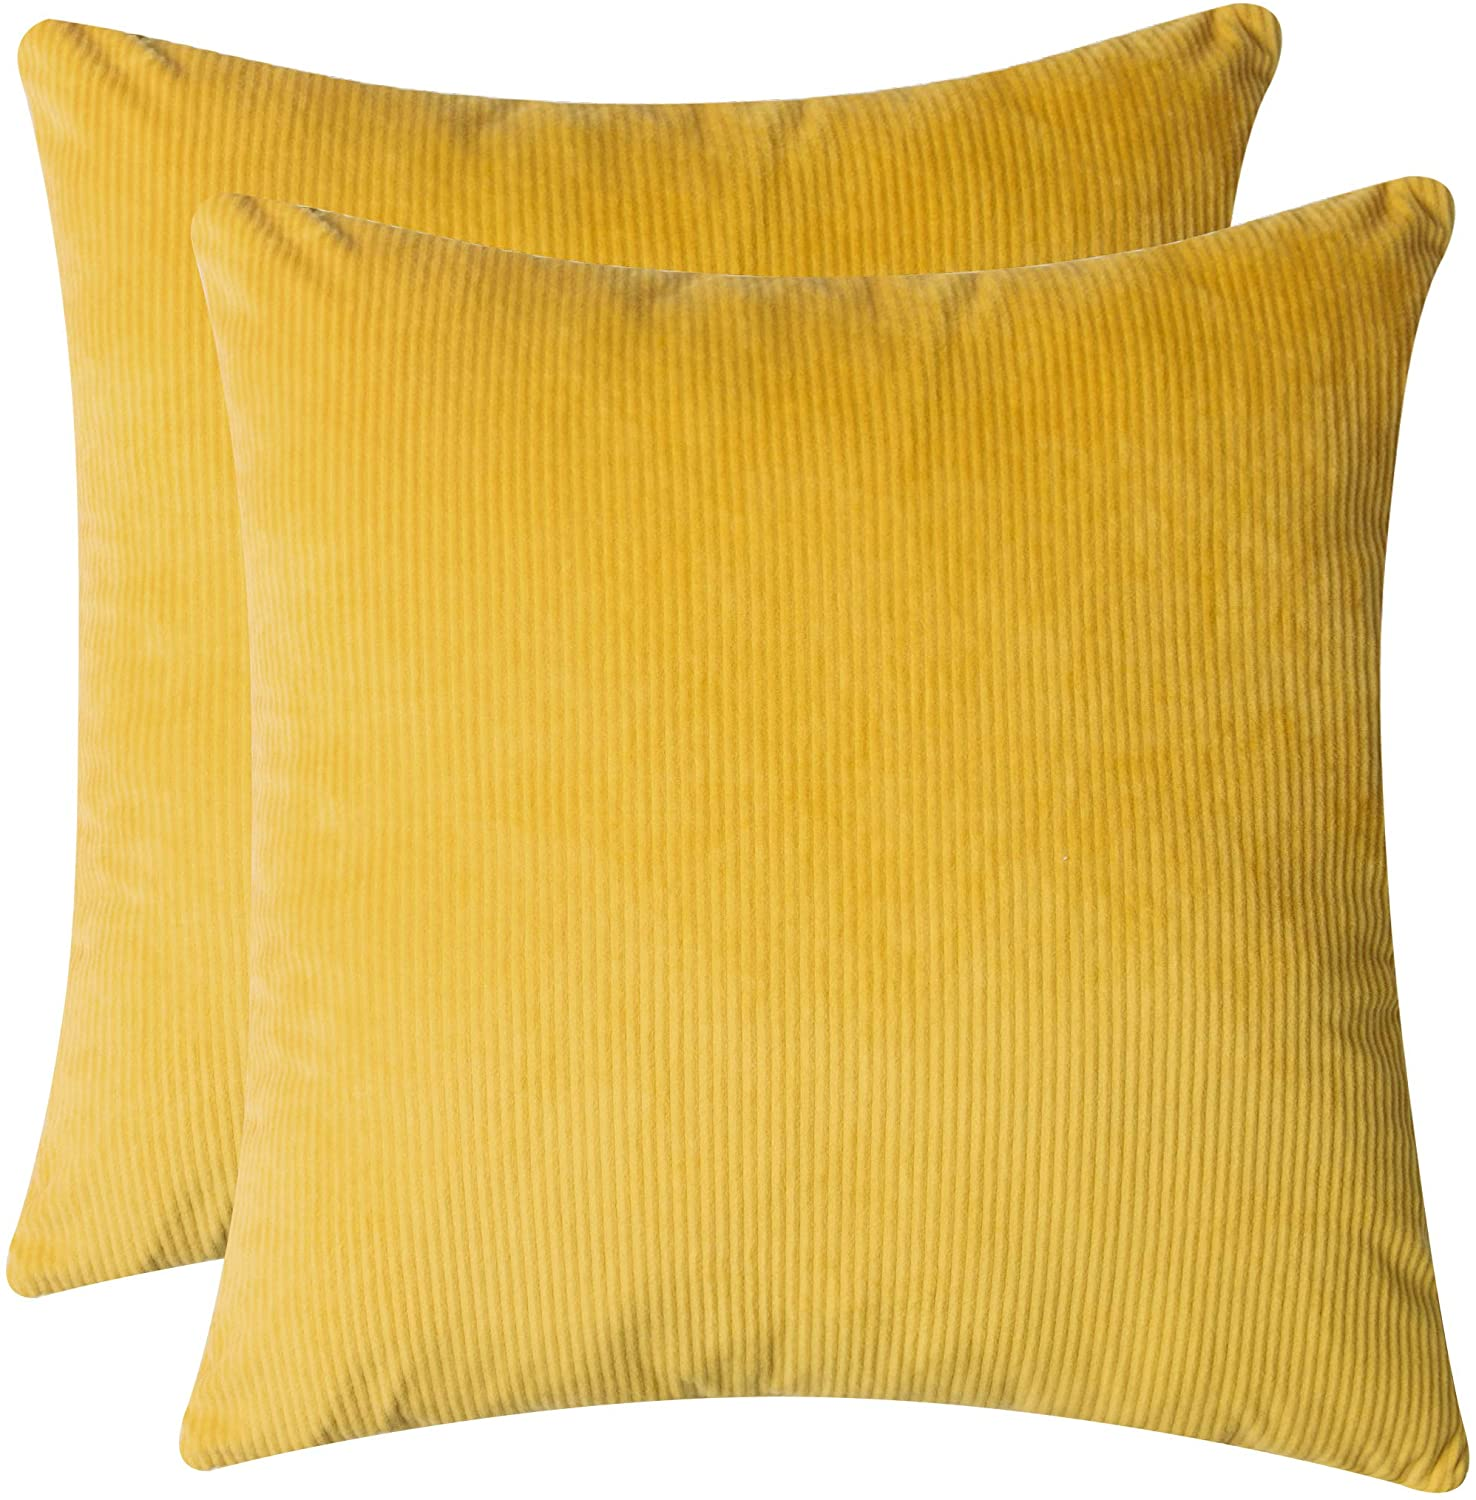 Glory Family Decor Pillow Covers Soft Decorative Striped Corduroy Velvet Square Summer Mustard Throw Pillow Sofa Cushion Covers Set Couch, 2 Pack, 18x18 inch (45cm) (Yellow-Strip)